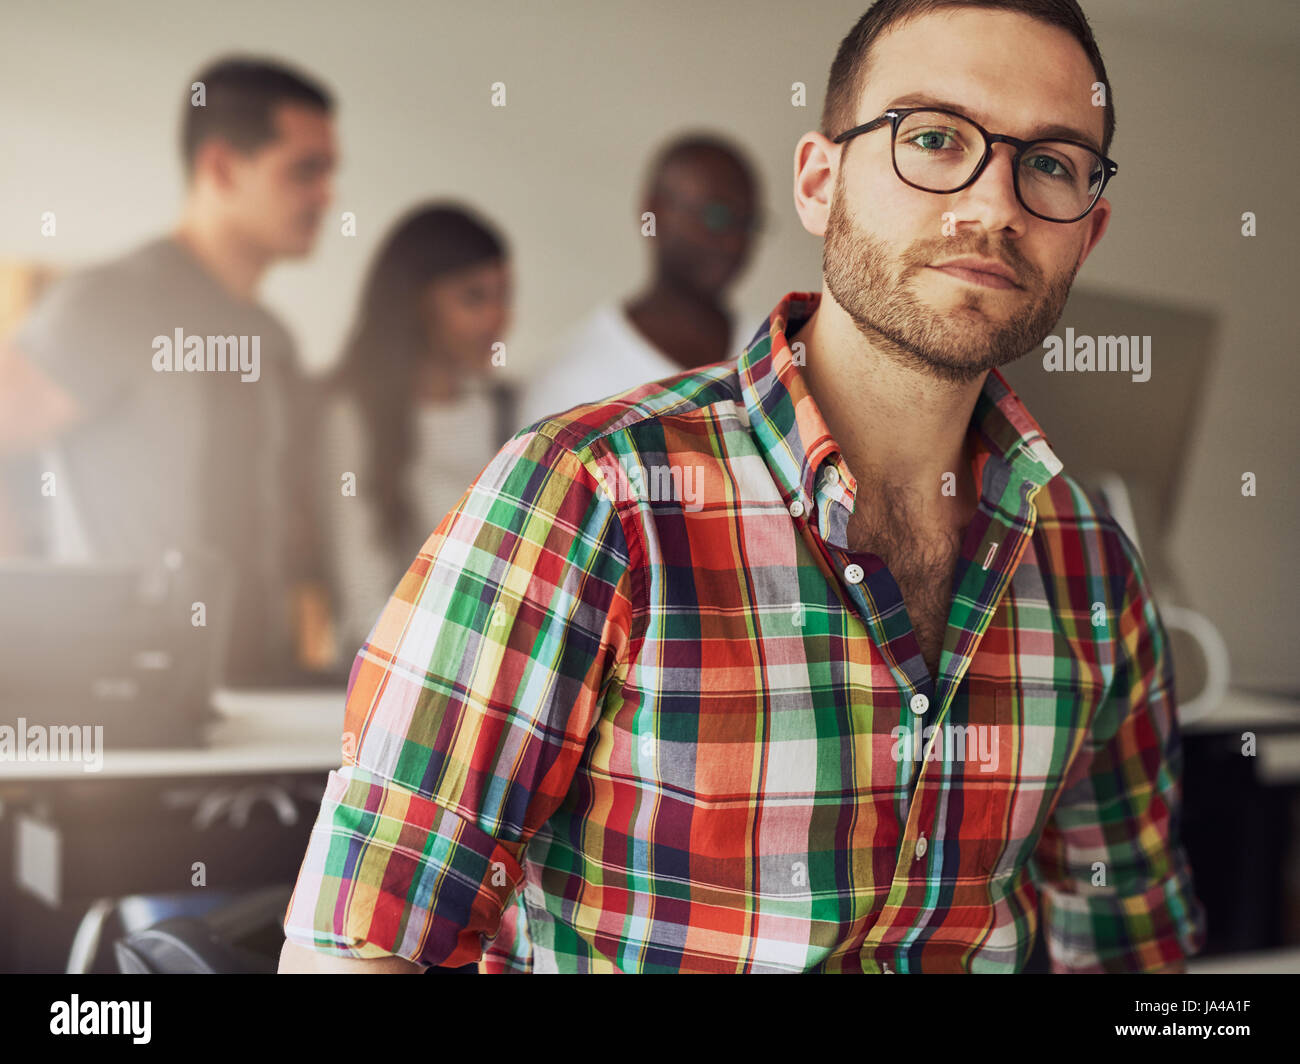 Modern businessman wearing casual clothes and glasses in the office. - Stock Image